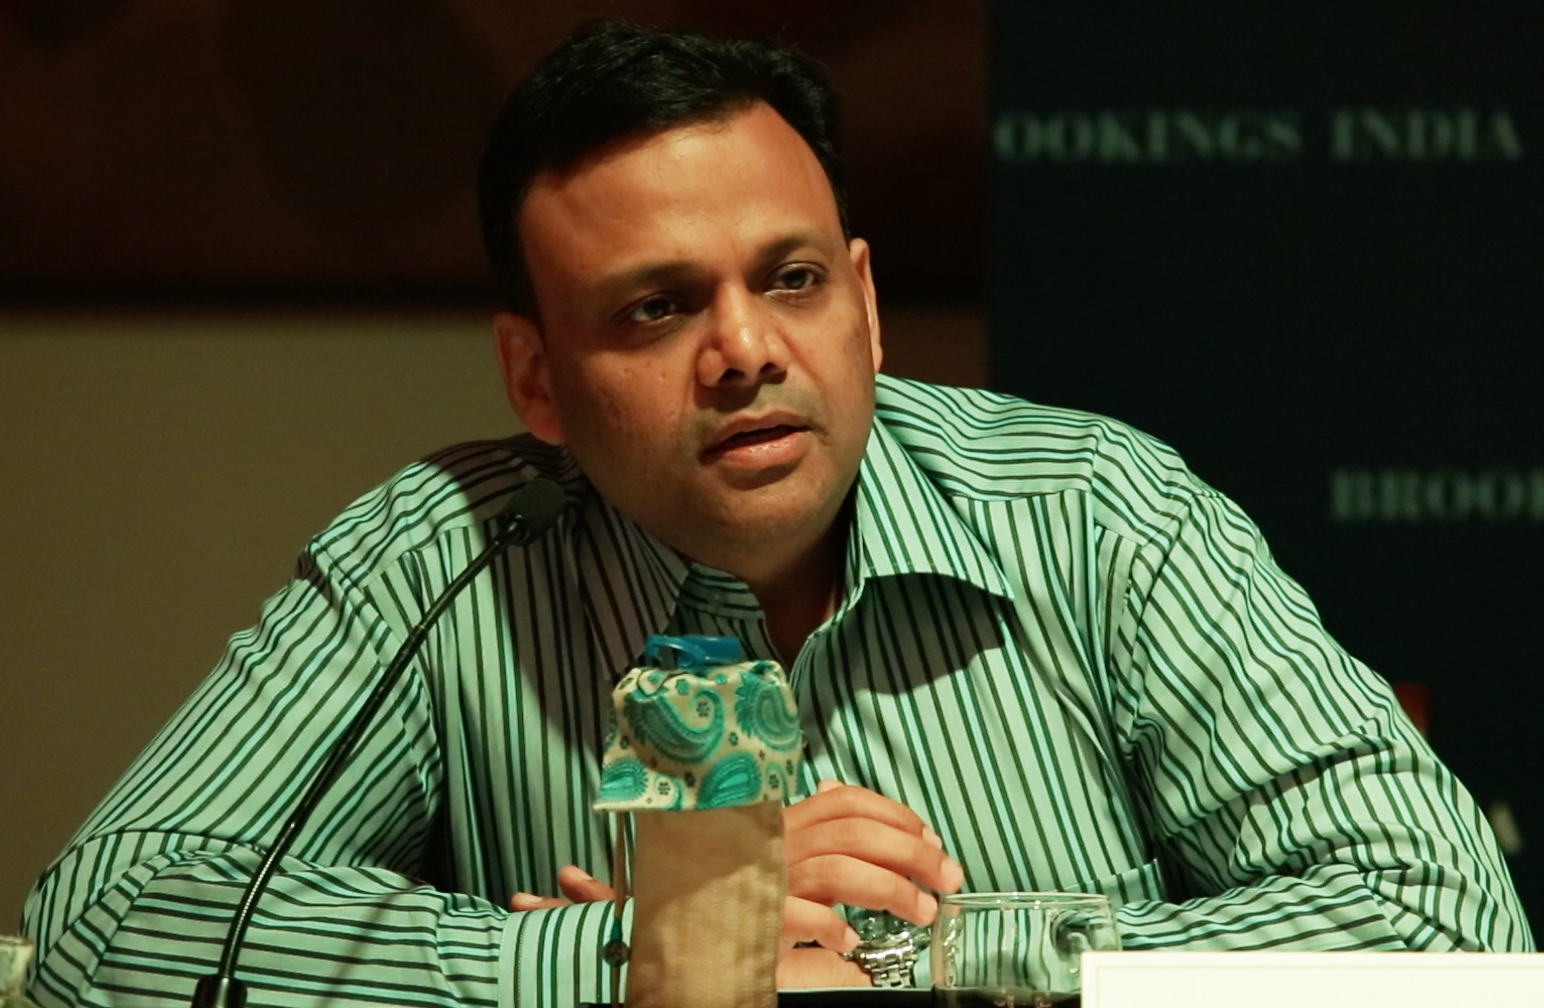 VIDEO: BJP cognizant of problems of spectrum availability